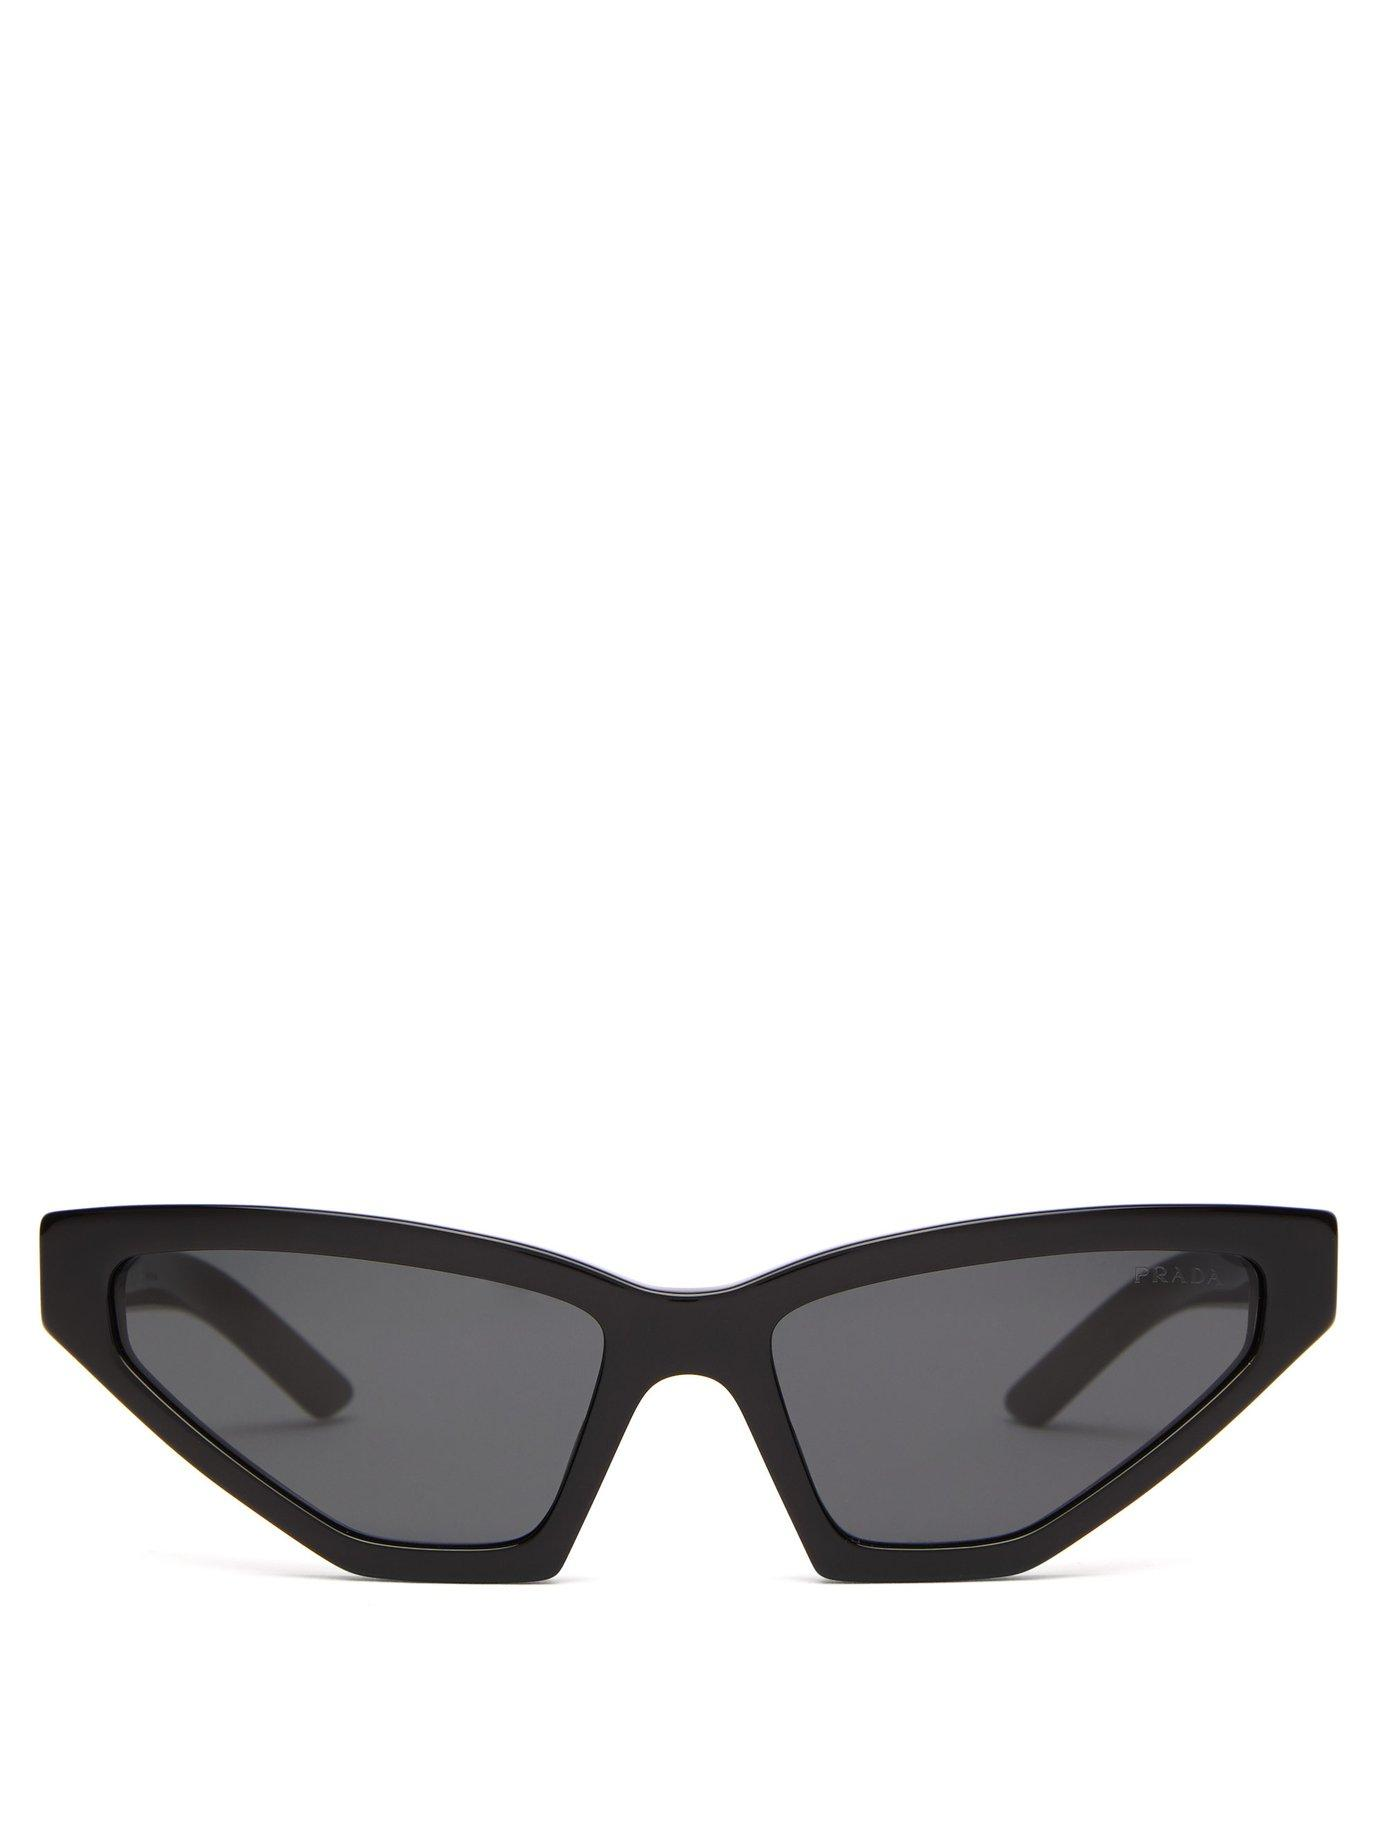 c59fb656491 Lyst - Prada Angular Cat Eye Acetate Sunglasses in Black